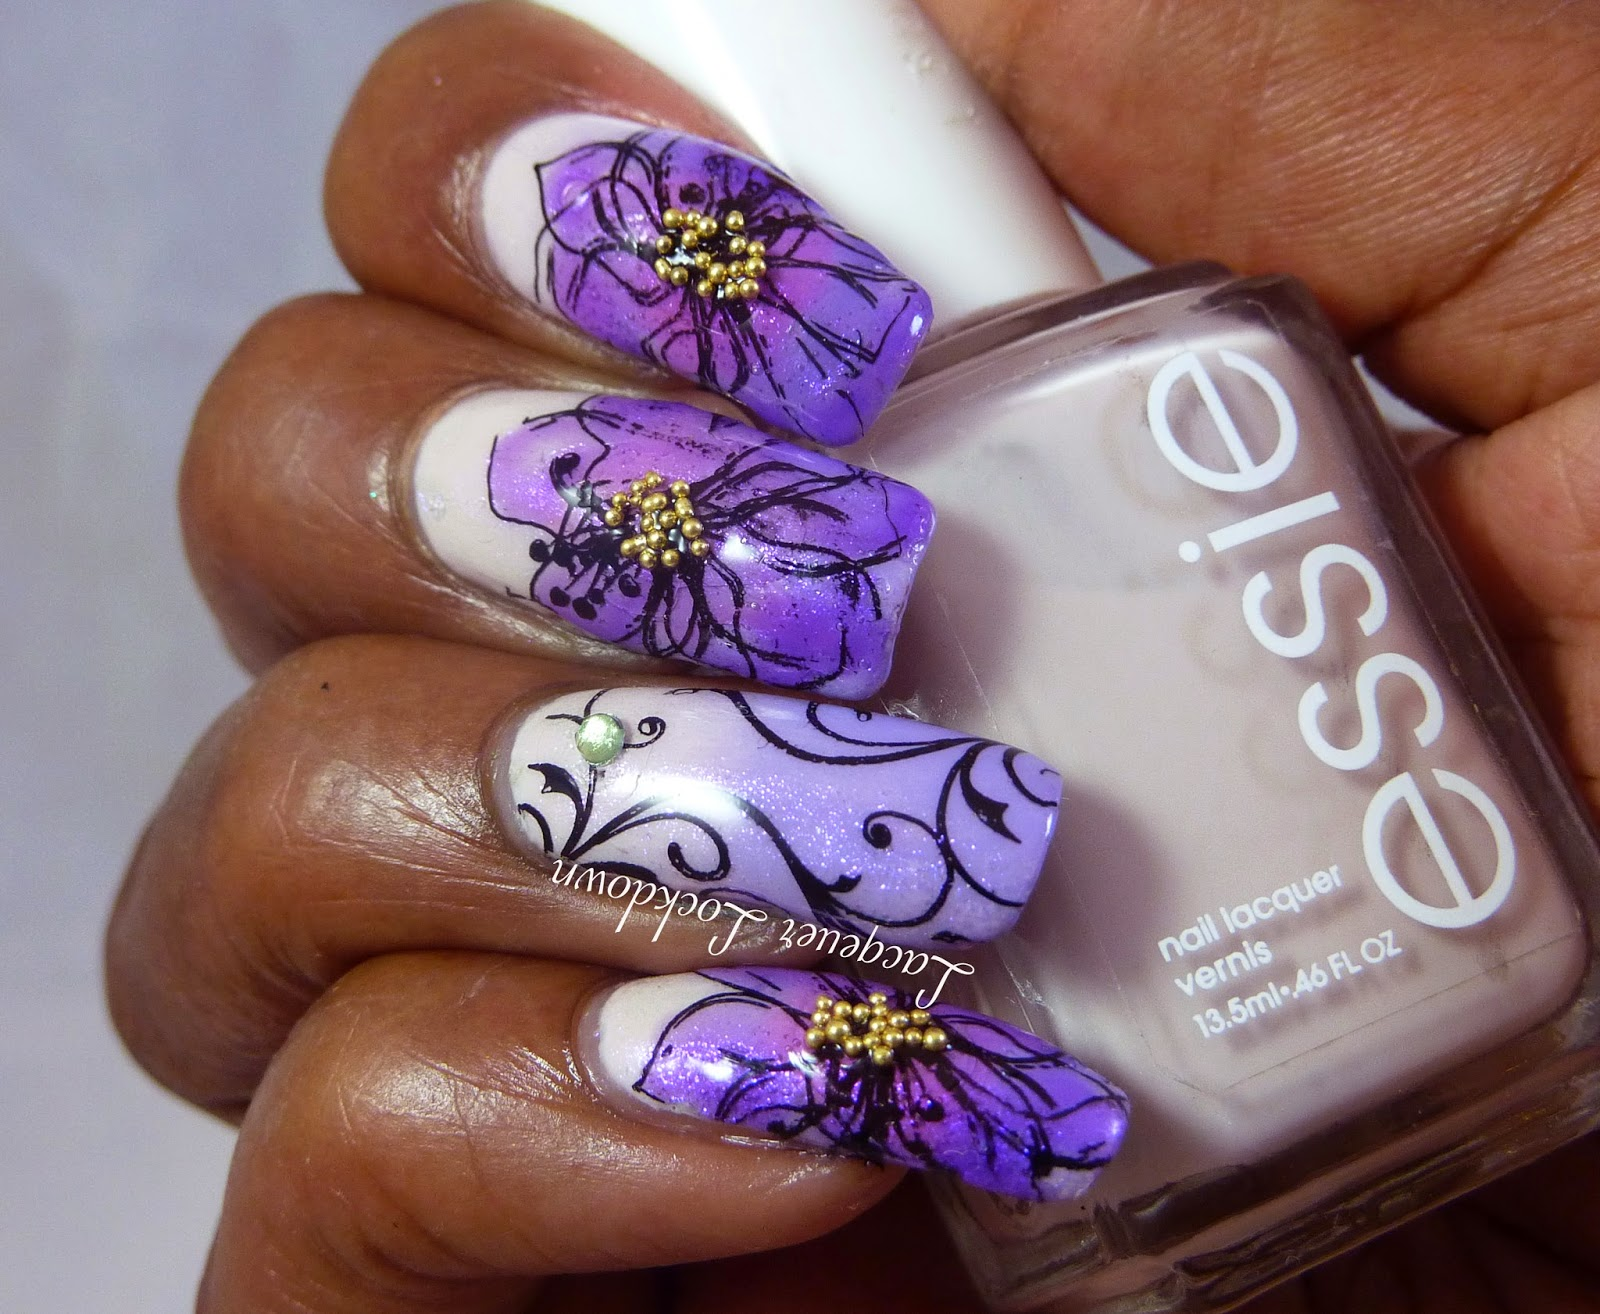 Lacquer Lockdown - nail art stamping blog, UberChic Beauty, UC 1-03, gradient nail art, UberChic Magic Dust, Mad Hatter Magic Dust, flowers, floral nail art, abstract nail art, China Glaze Tart-y For The Party, Essie Urban Jungle, nail art stamping, nail art, diy nail art, cute,